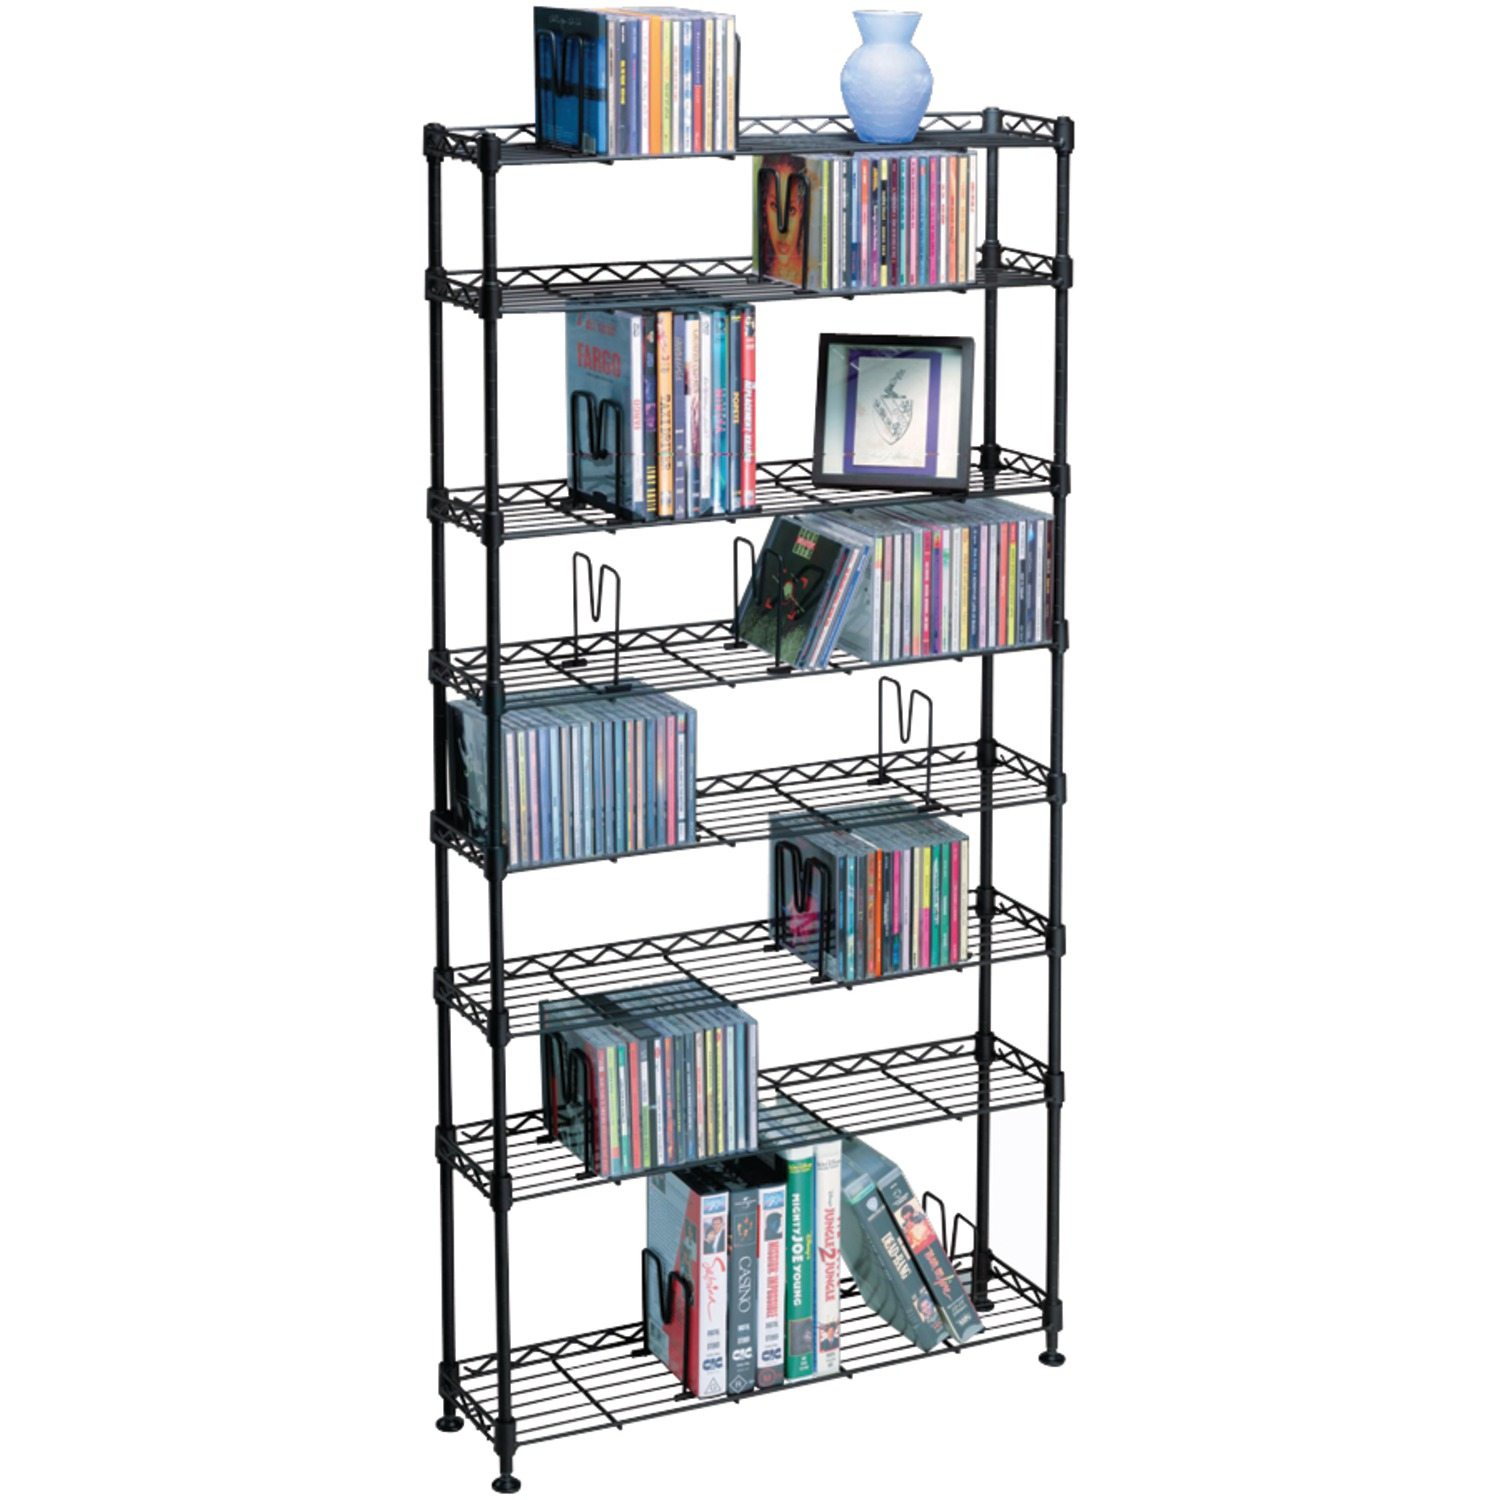 Atlantic 8-Shelf CD/DVD Rack Multimedia Storage Unit